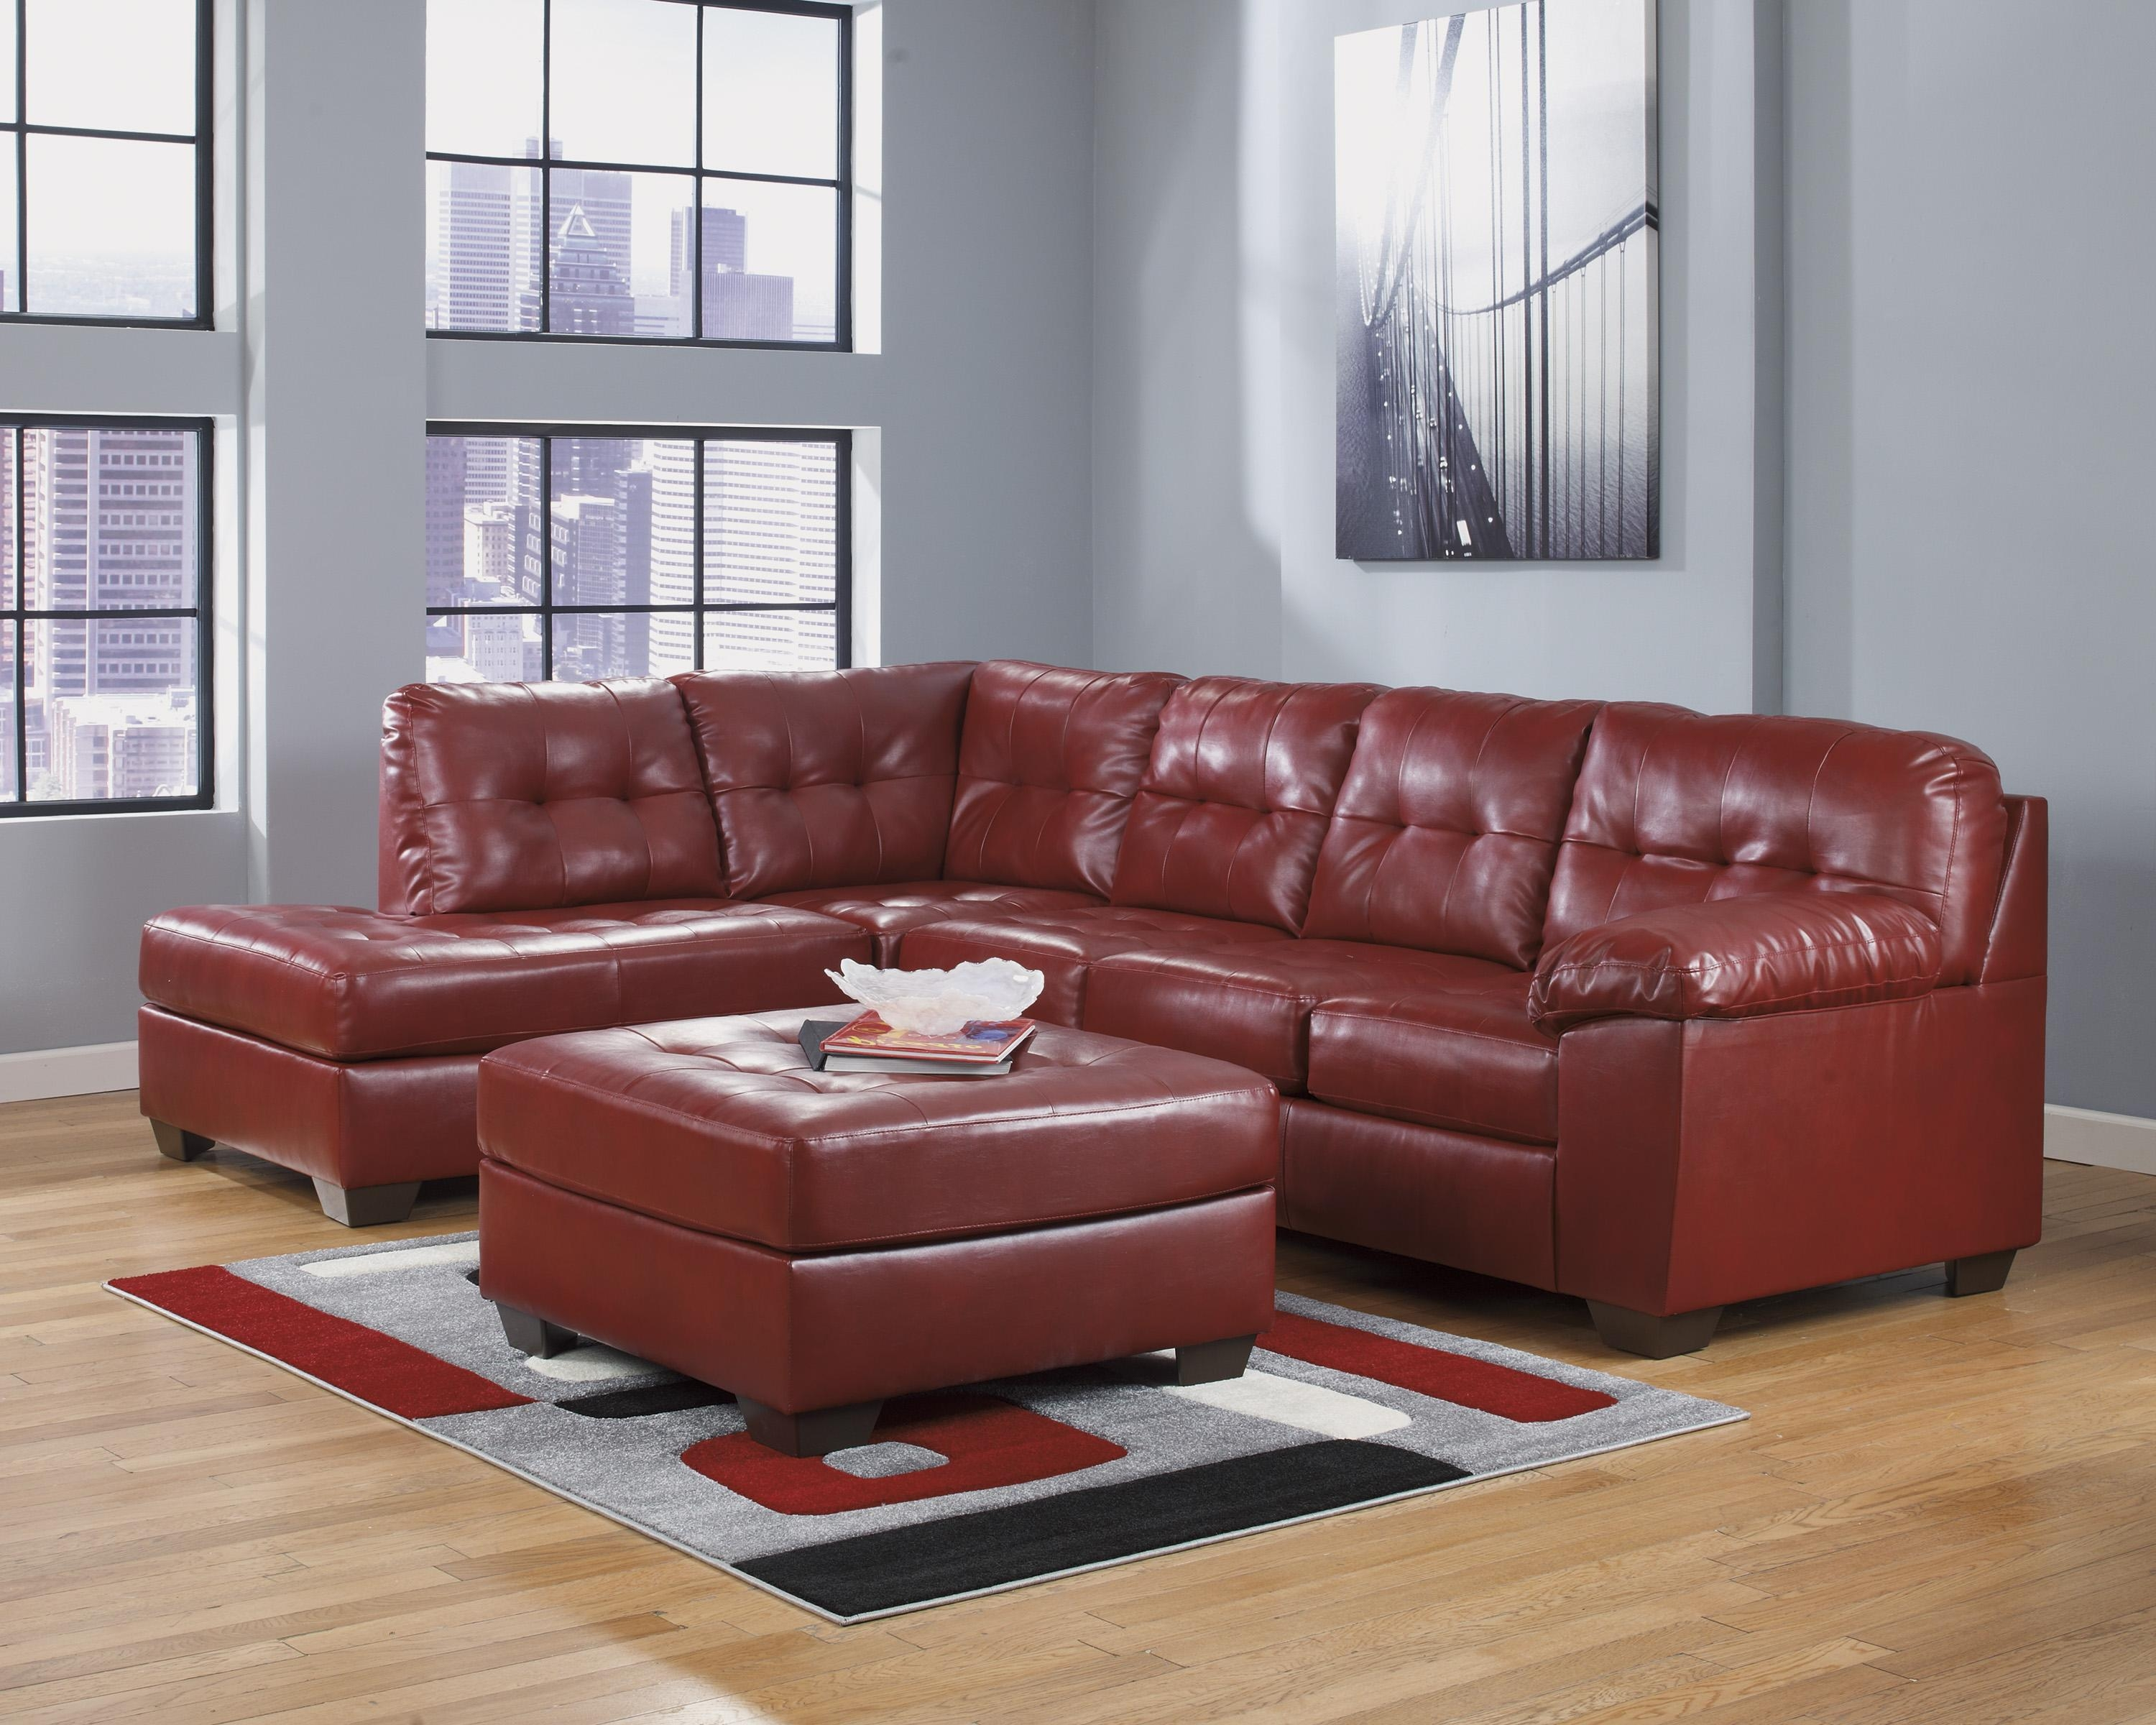 Curved Sectional Sofa Ashley | Tehranmix Decoration Regarding Ashley Curved Sectional (Image 8 of 15)